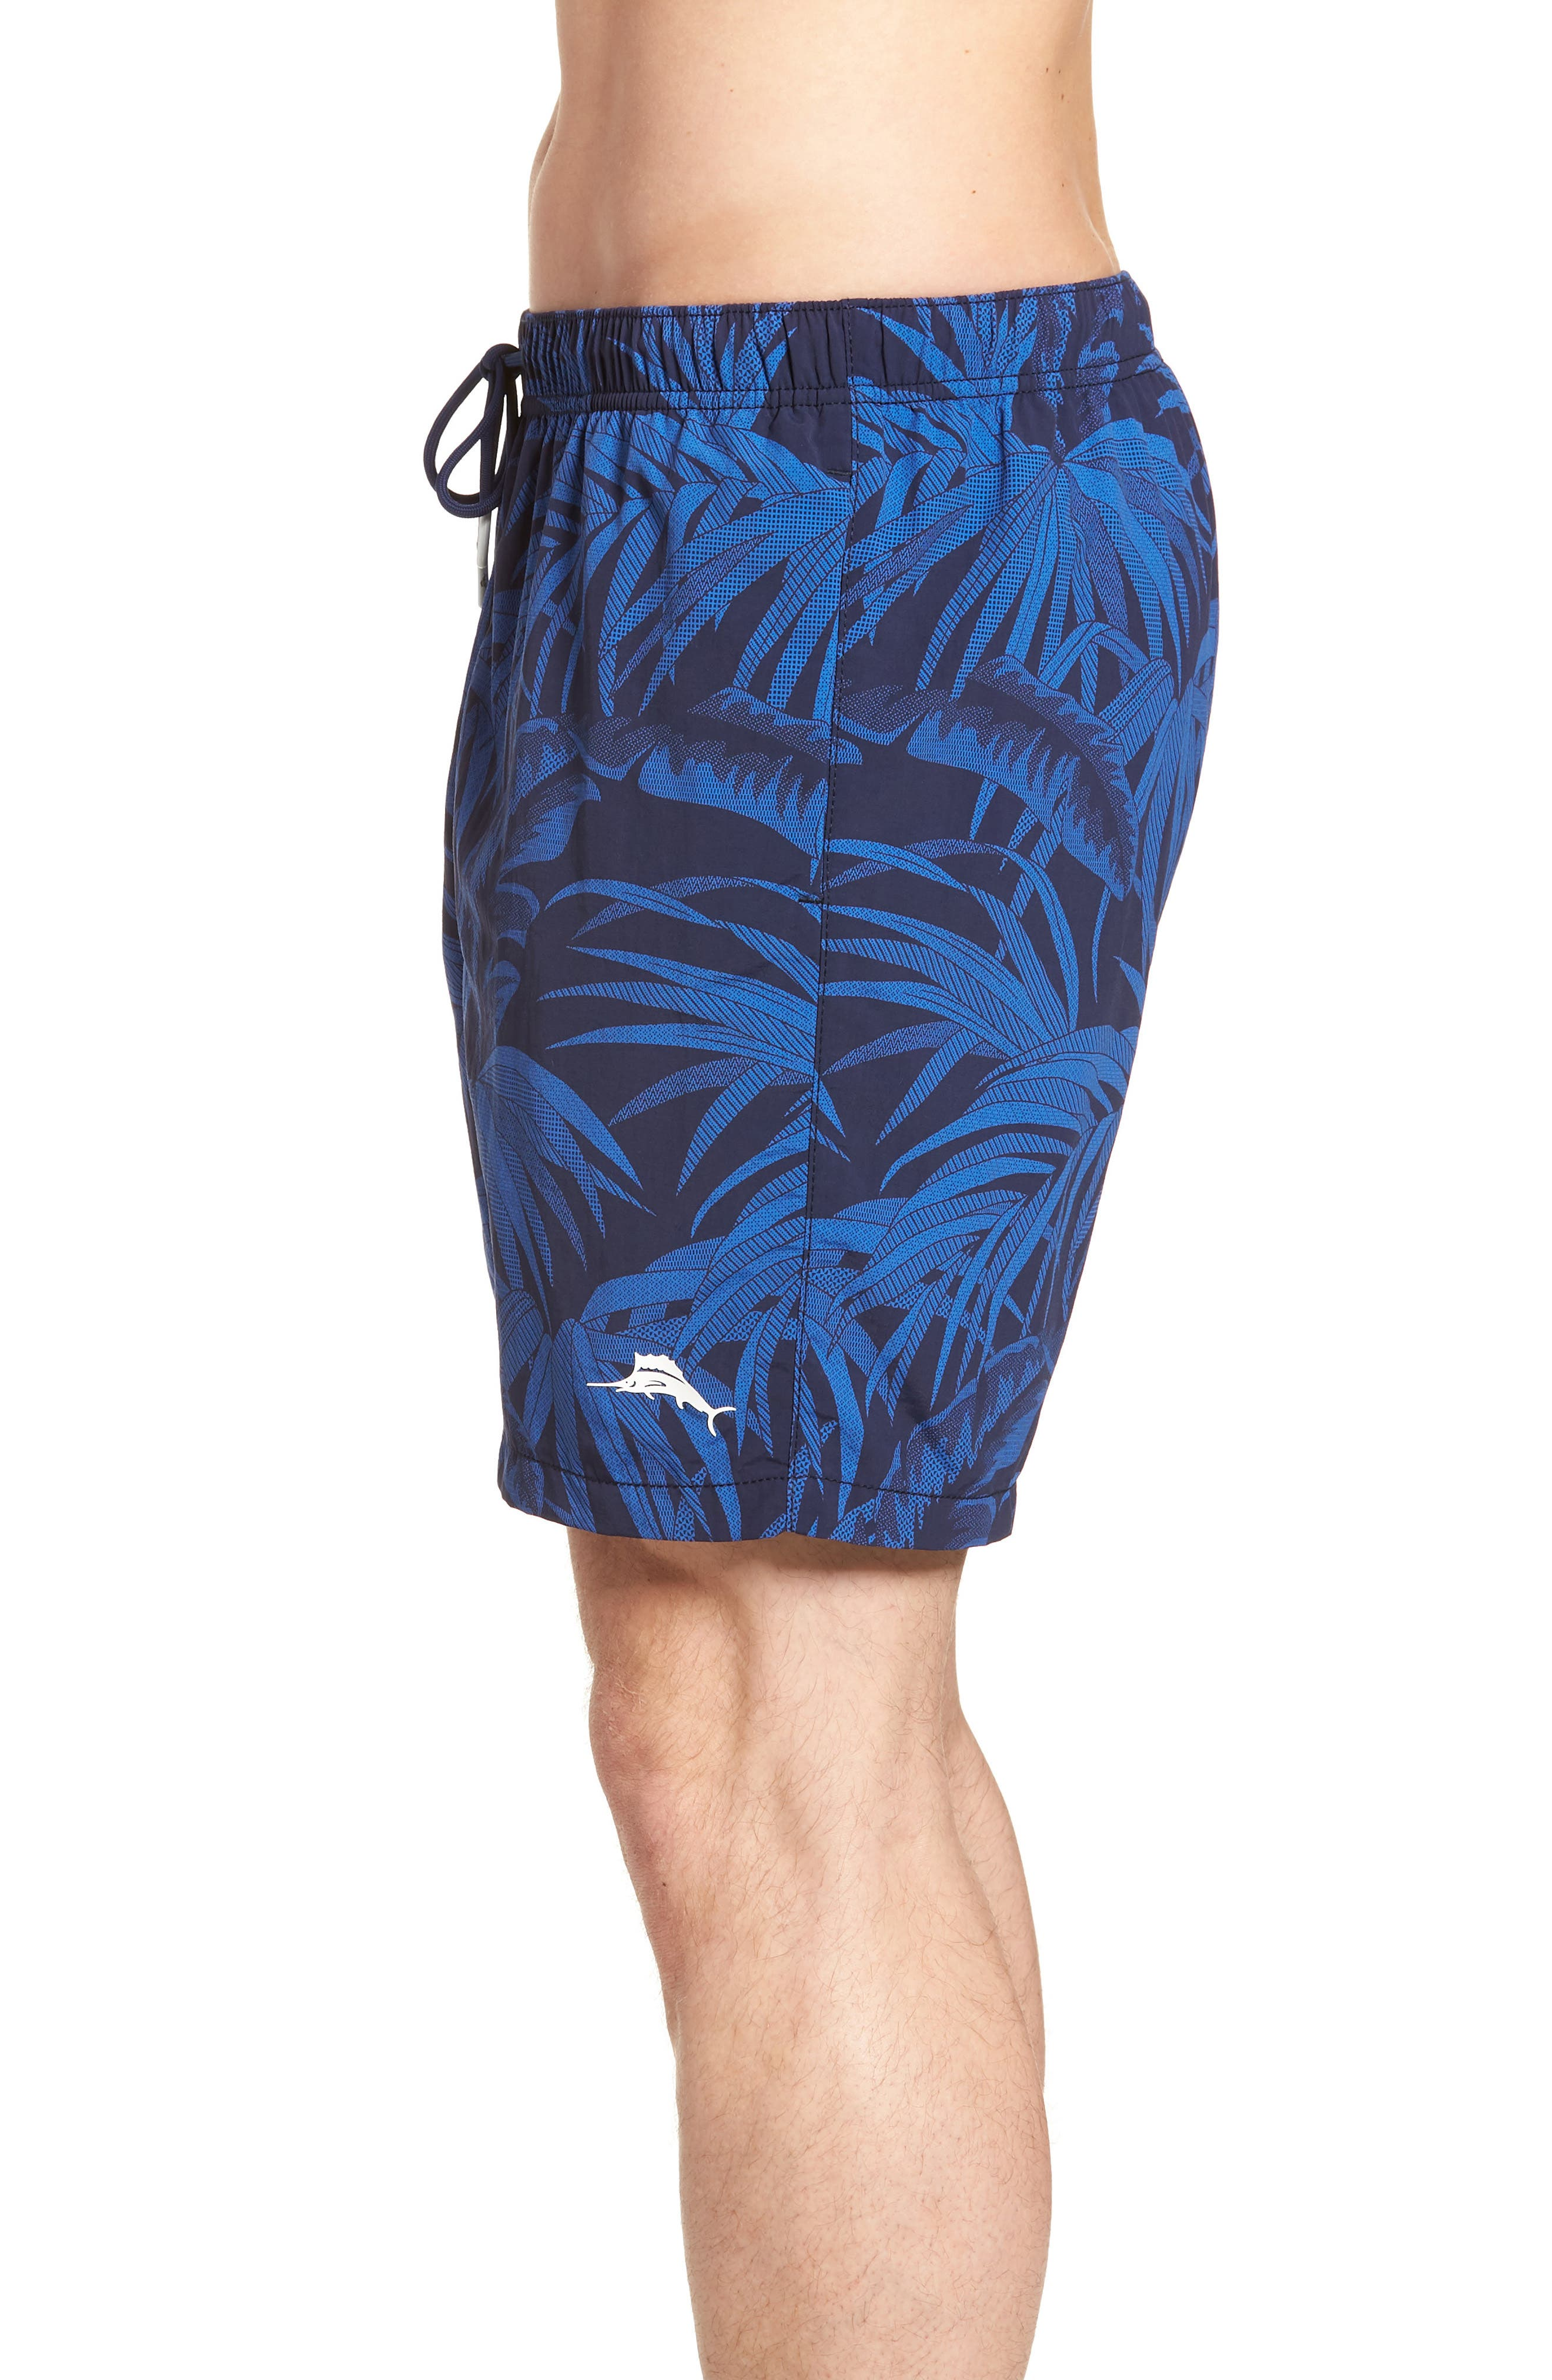 Naples Midnight Flora Swim Trunks,                             Alternate thumbnail 4, color,                             400